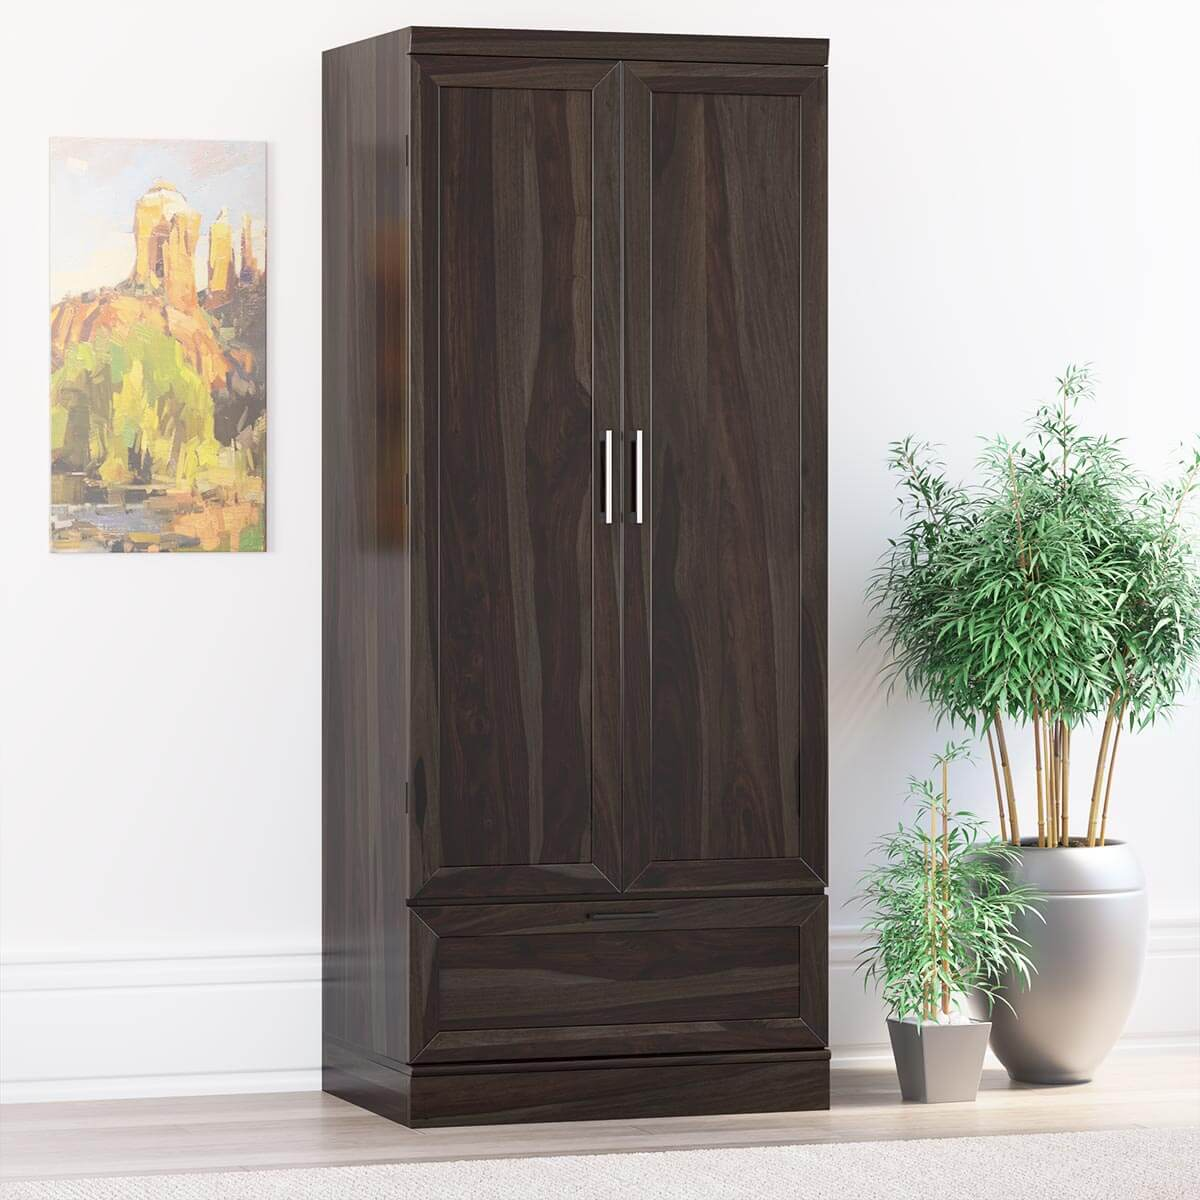 Anchorage Rustic Solid Wood Wardrobe Clothing Armoire With Drawer